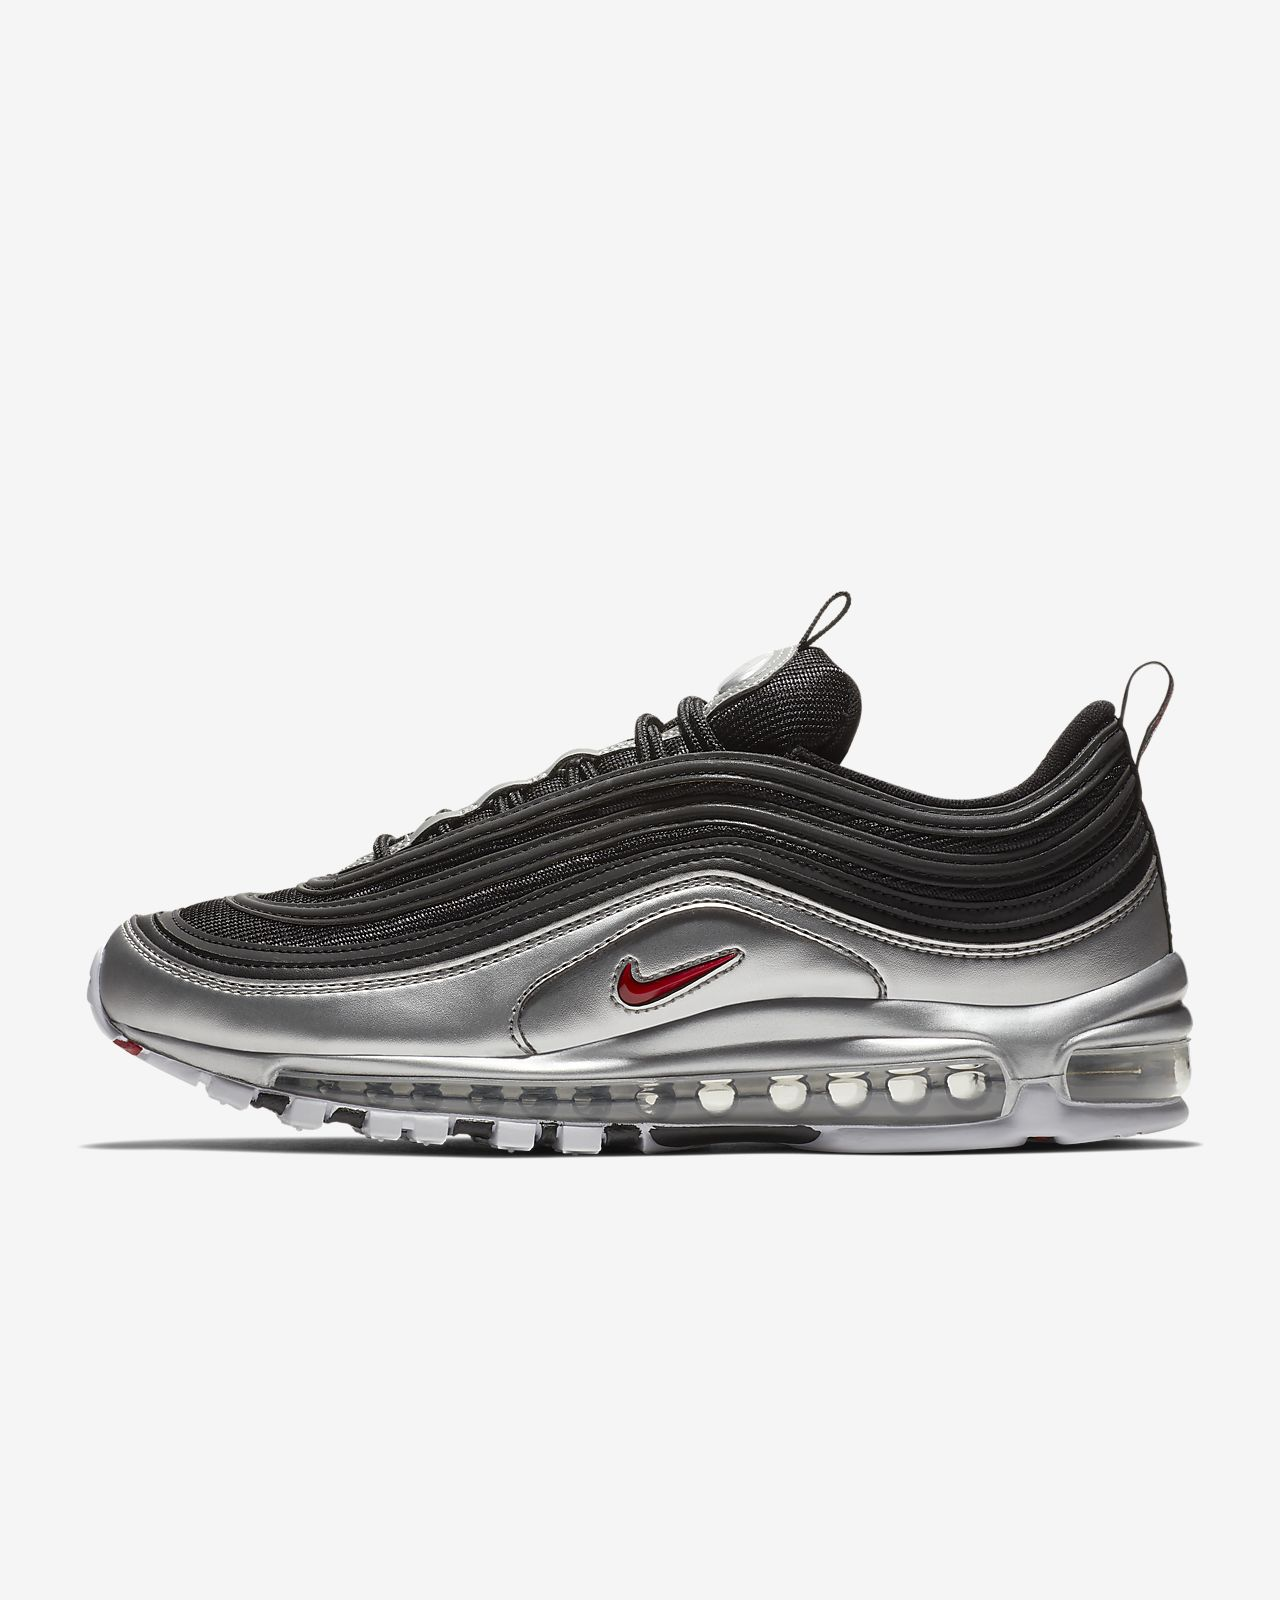 brand new c3f47 32ad5 Nike Air Max 97 QS Men's Shoe